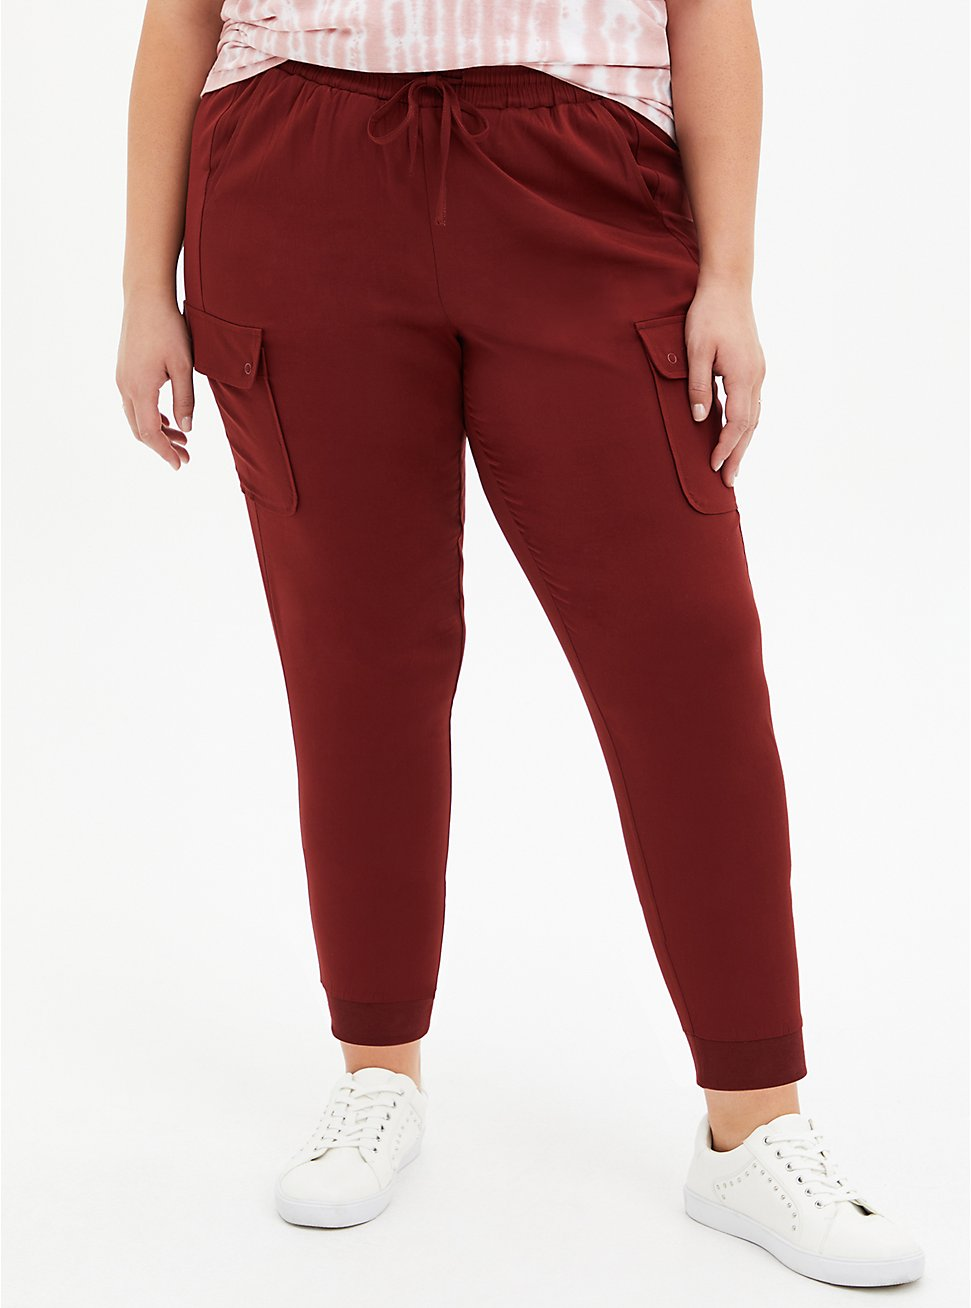 Relaxed Fit Crop Jogger - Challis Brick Red, MADDER BROWN, hi-res